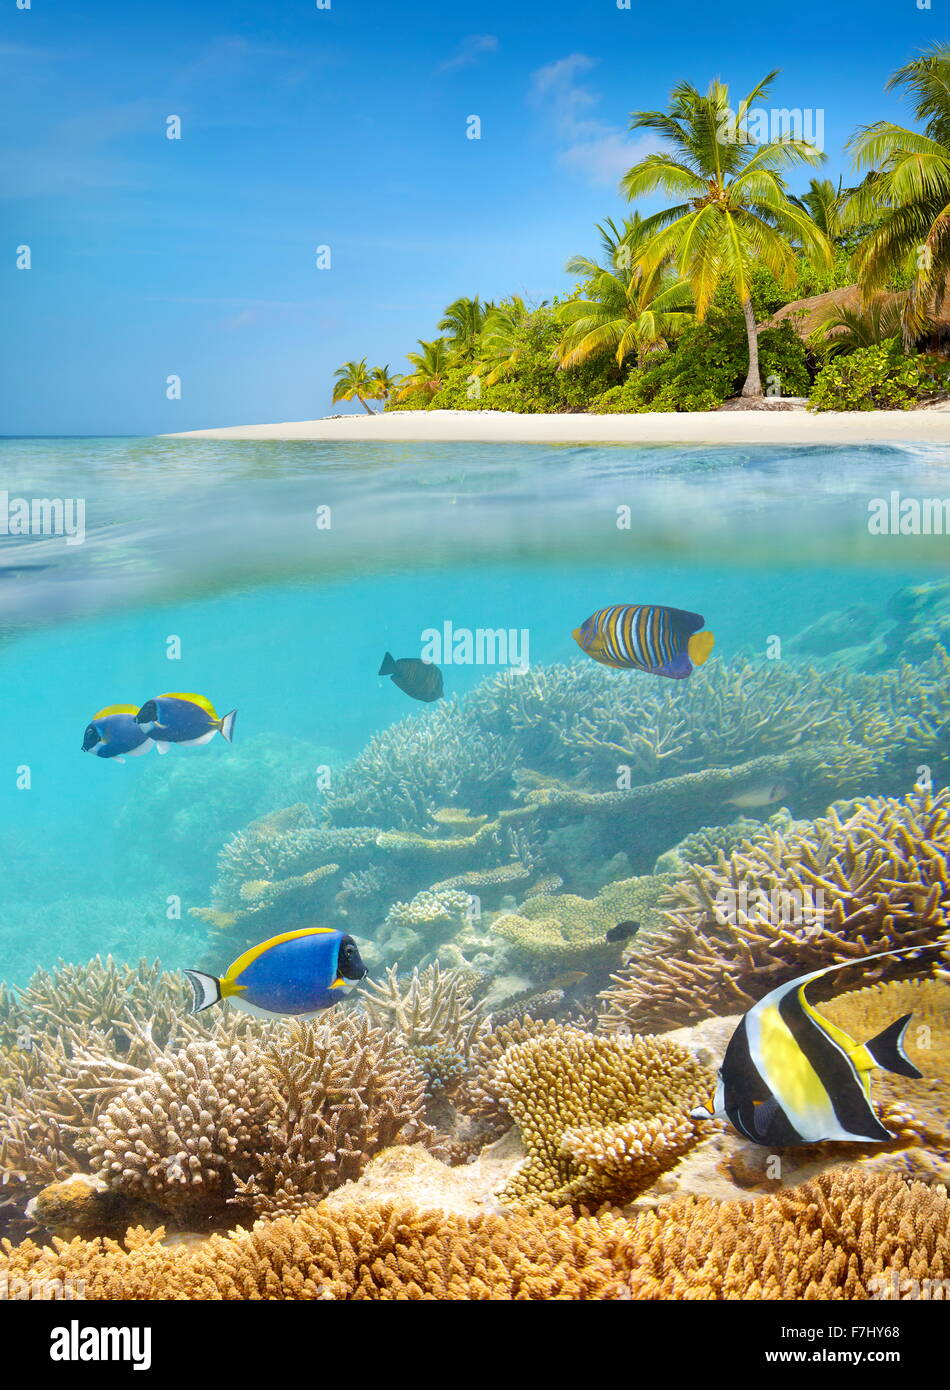 Tropical Beach at Maldives Island Photo Stock